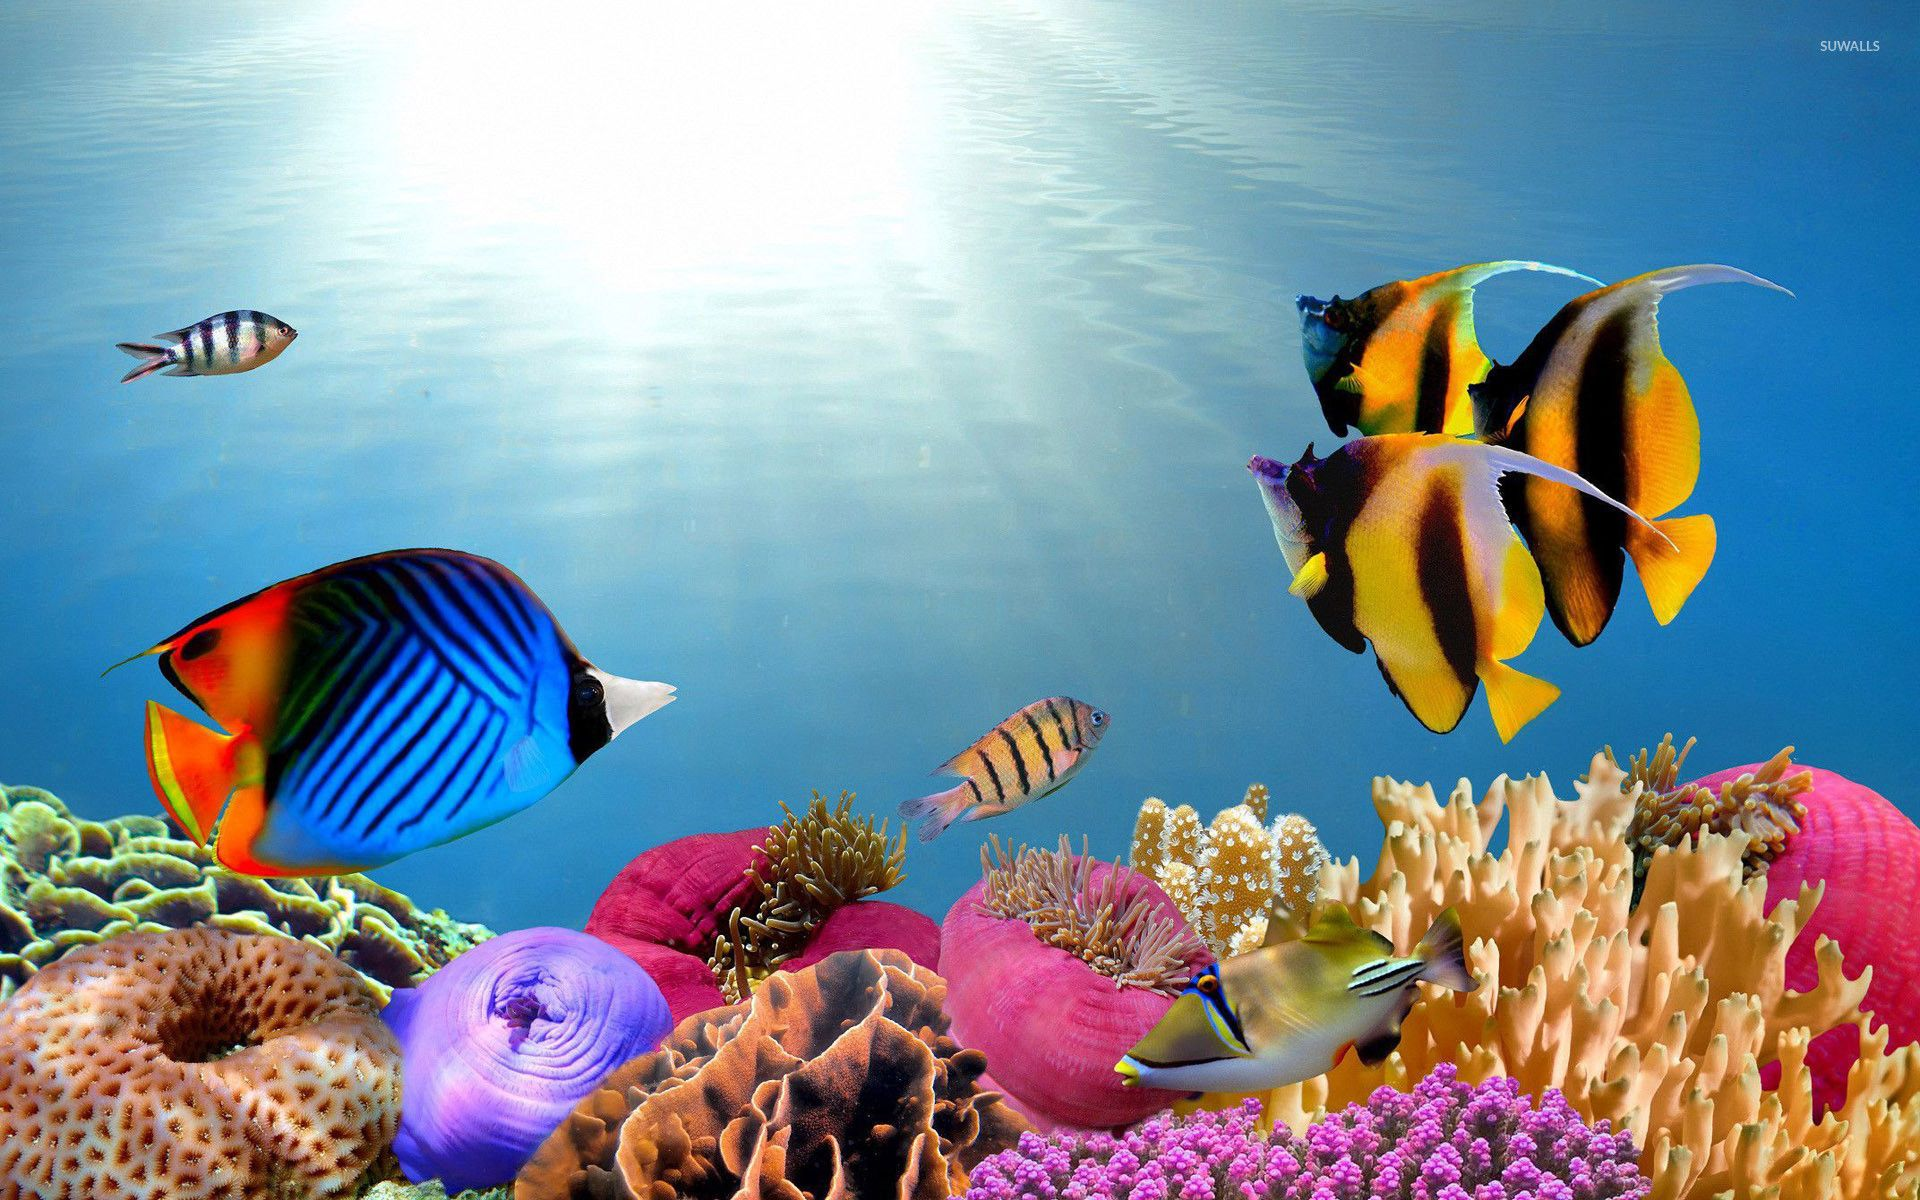 Tropical Fish Wallpapers 48 Best Free Tropical Fish Hd Wallpaper For Iphone Check More At Https Thepho In 2020 Tropical Fish Pictures Fish Wallpaper Tropical Animals